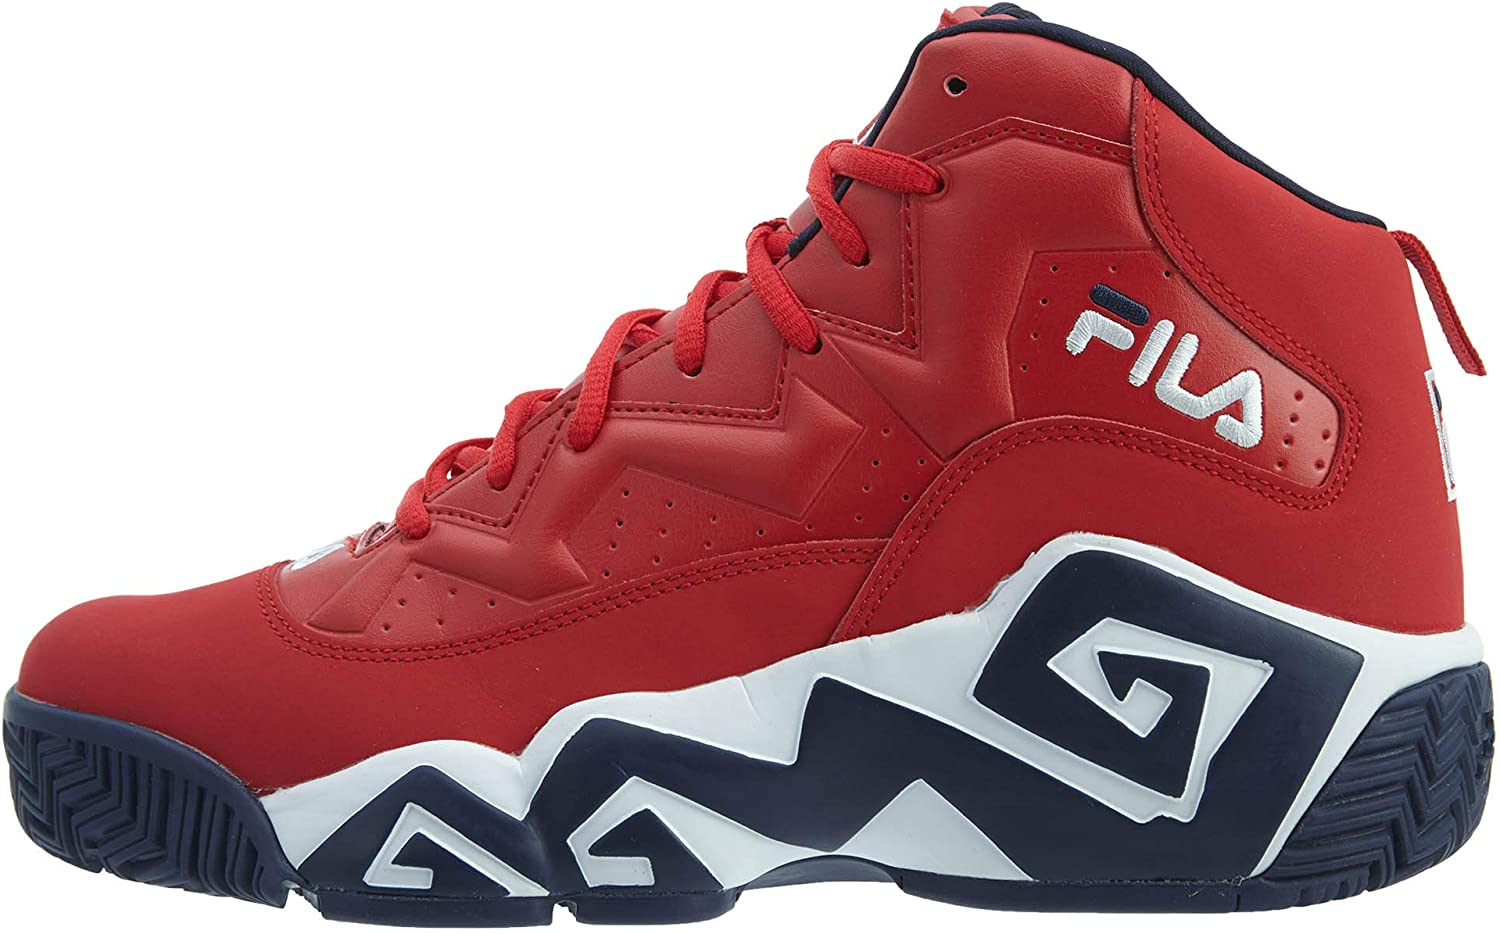 Fila Men's MB Leather Retro High-Top Basketball Trainers shoes Sneakers